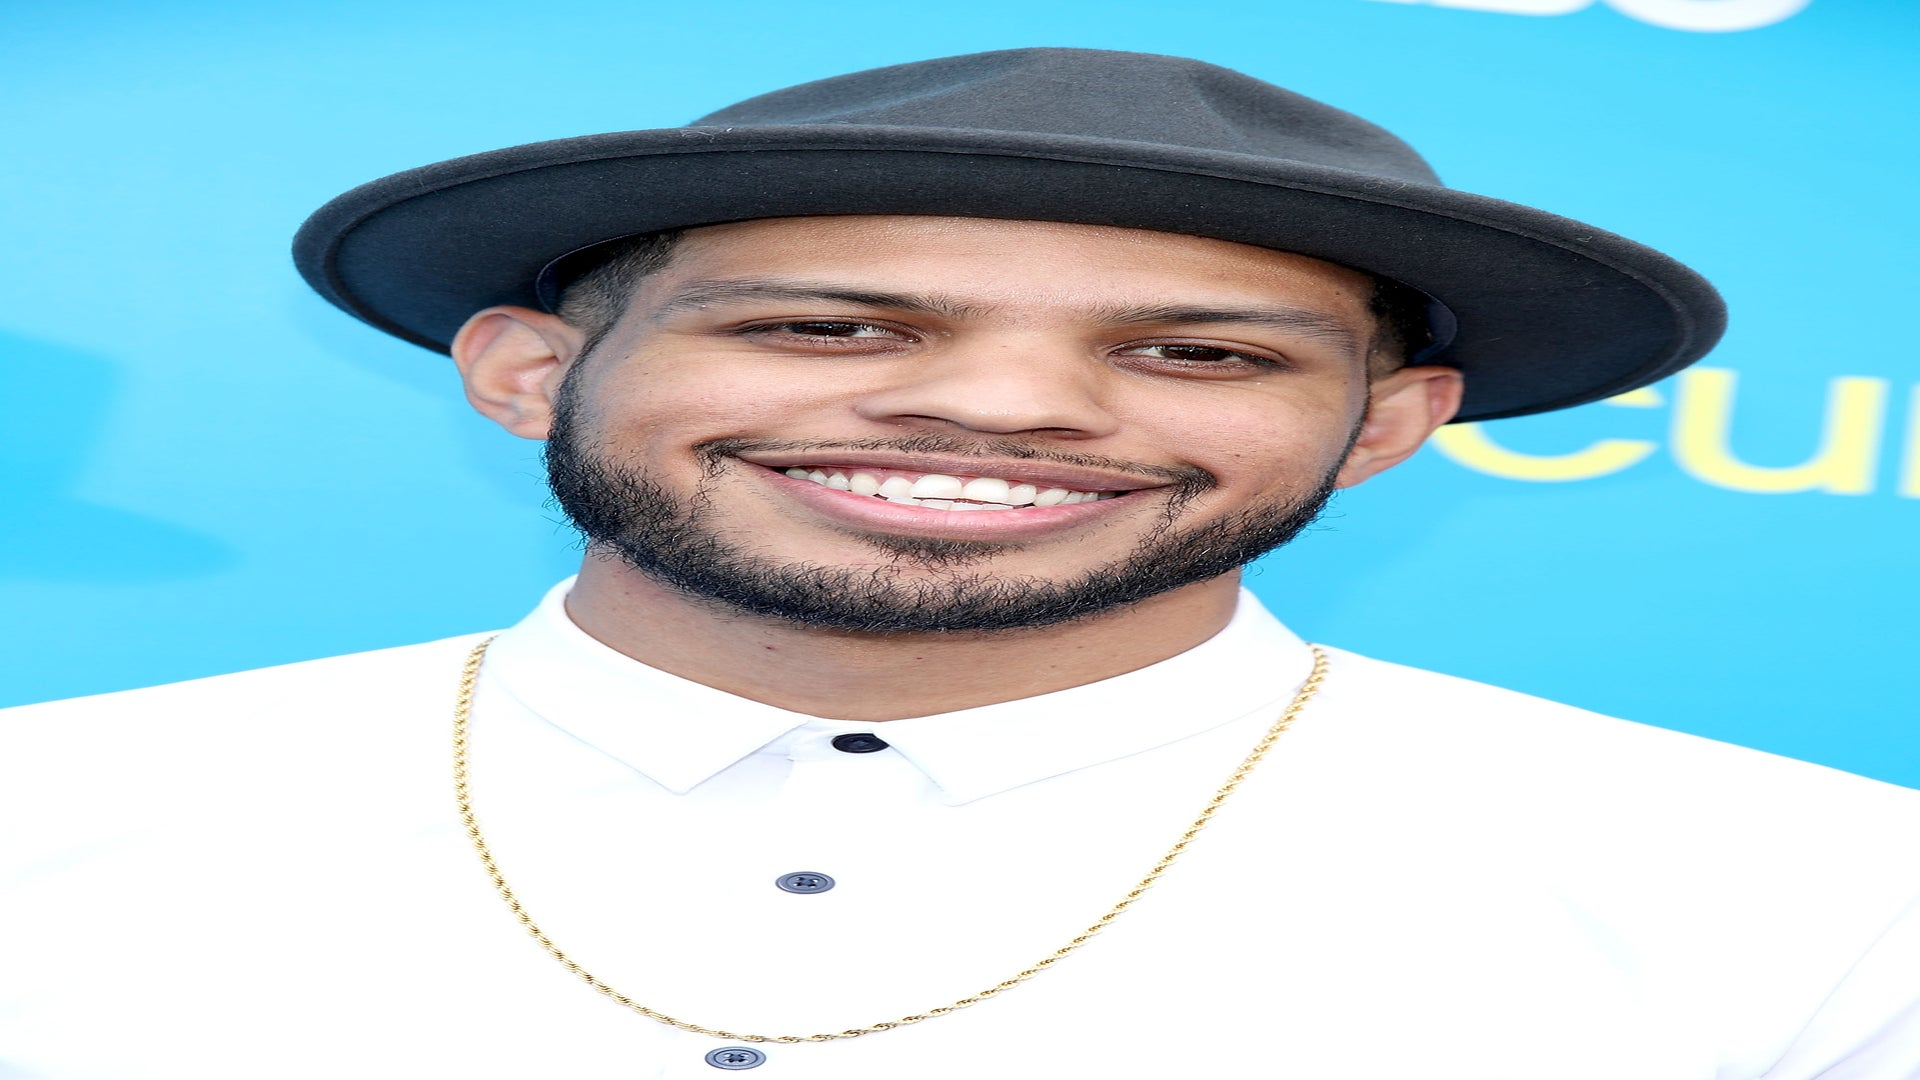 5 Things To Know About 'Insecure' Actor Sarunas J. Jackson